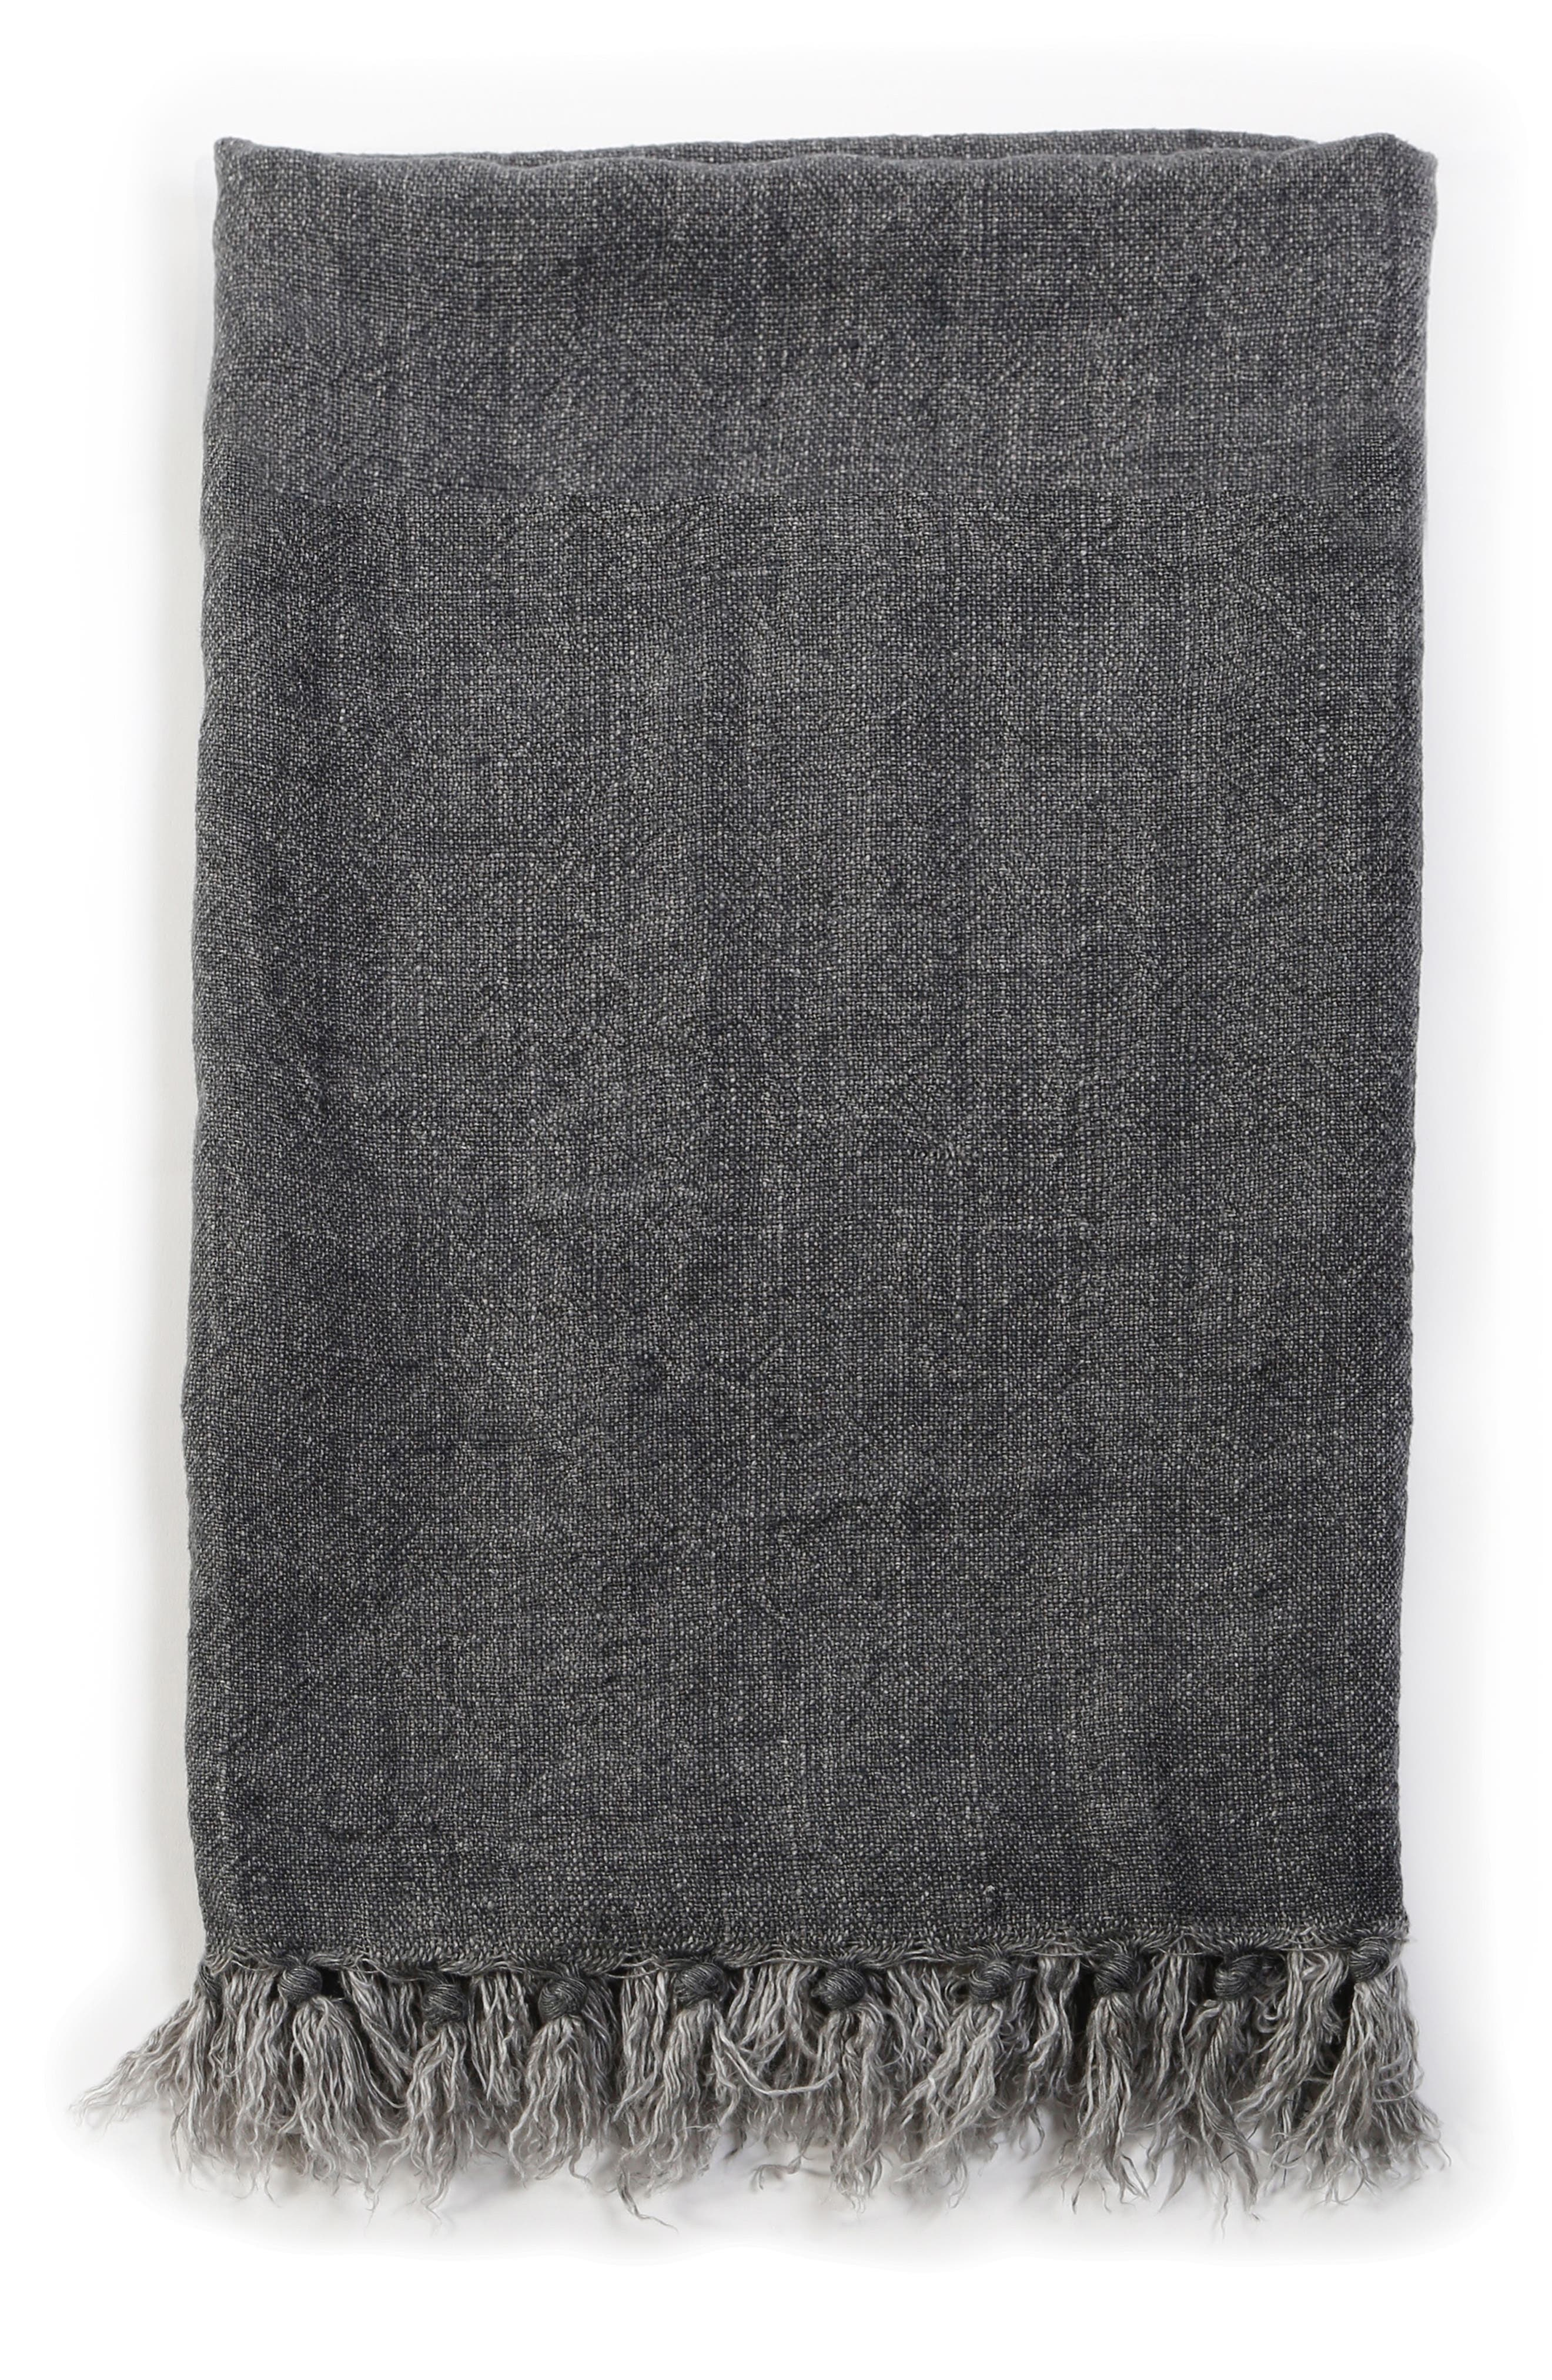 POM POM AT HOME, Montauk Throw Blanket, Main thumbnail 1, color, CHARCOAL